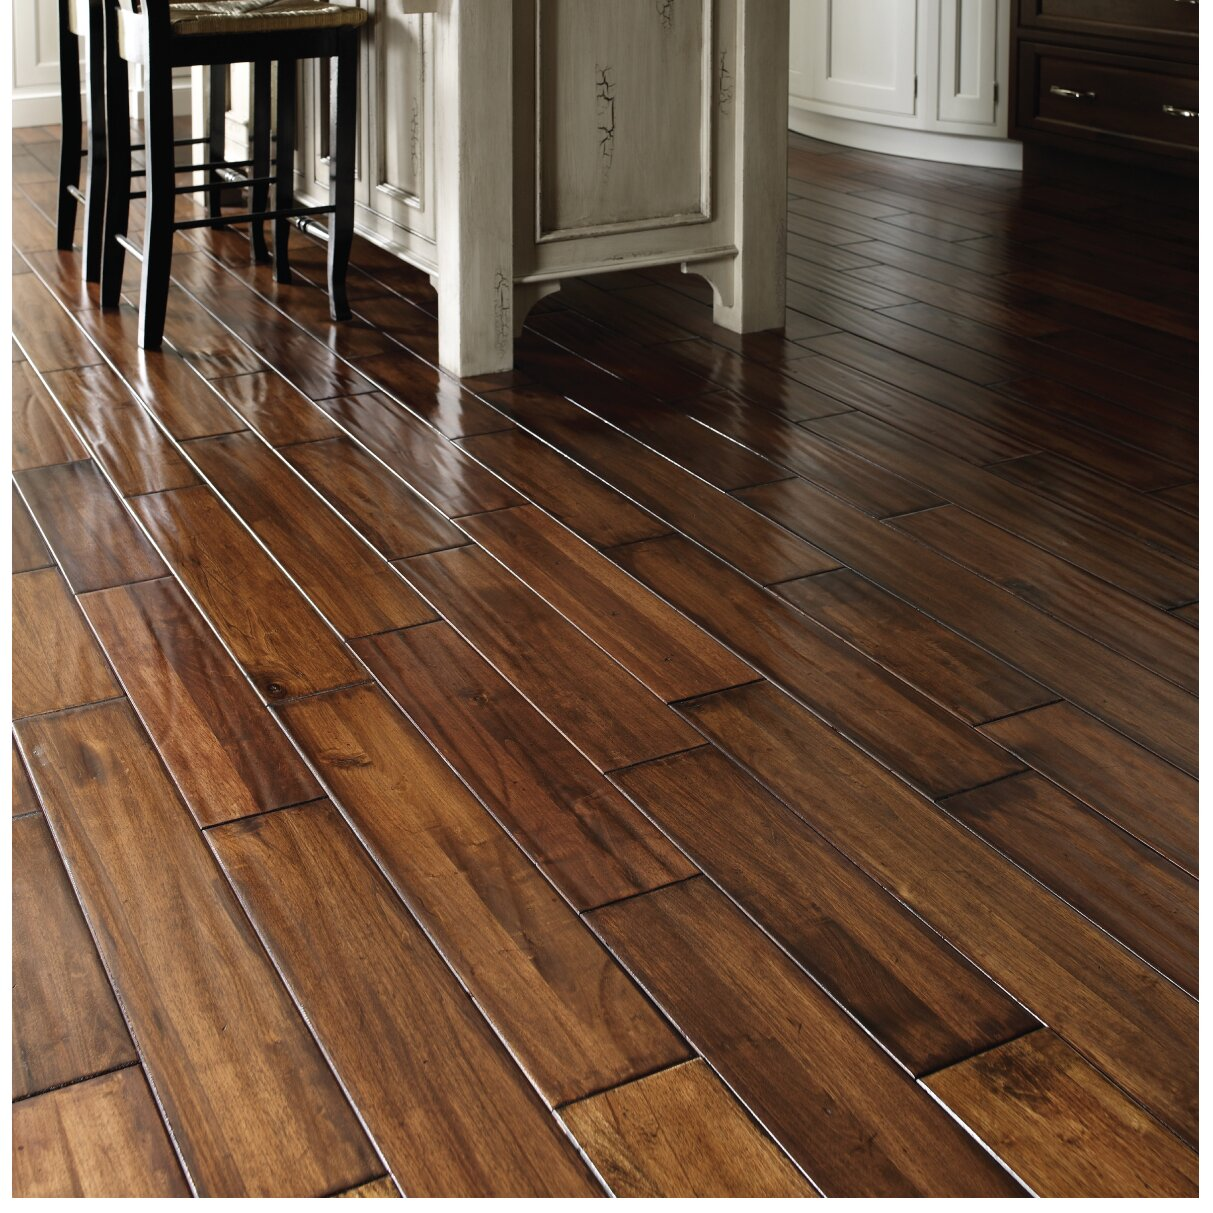 Classic Hardwood Floors somerset hardwood flooring somerset home 5 Engineered Manchurian Walnut Hardwood Flooring In Classic